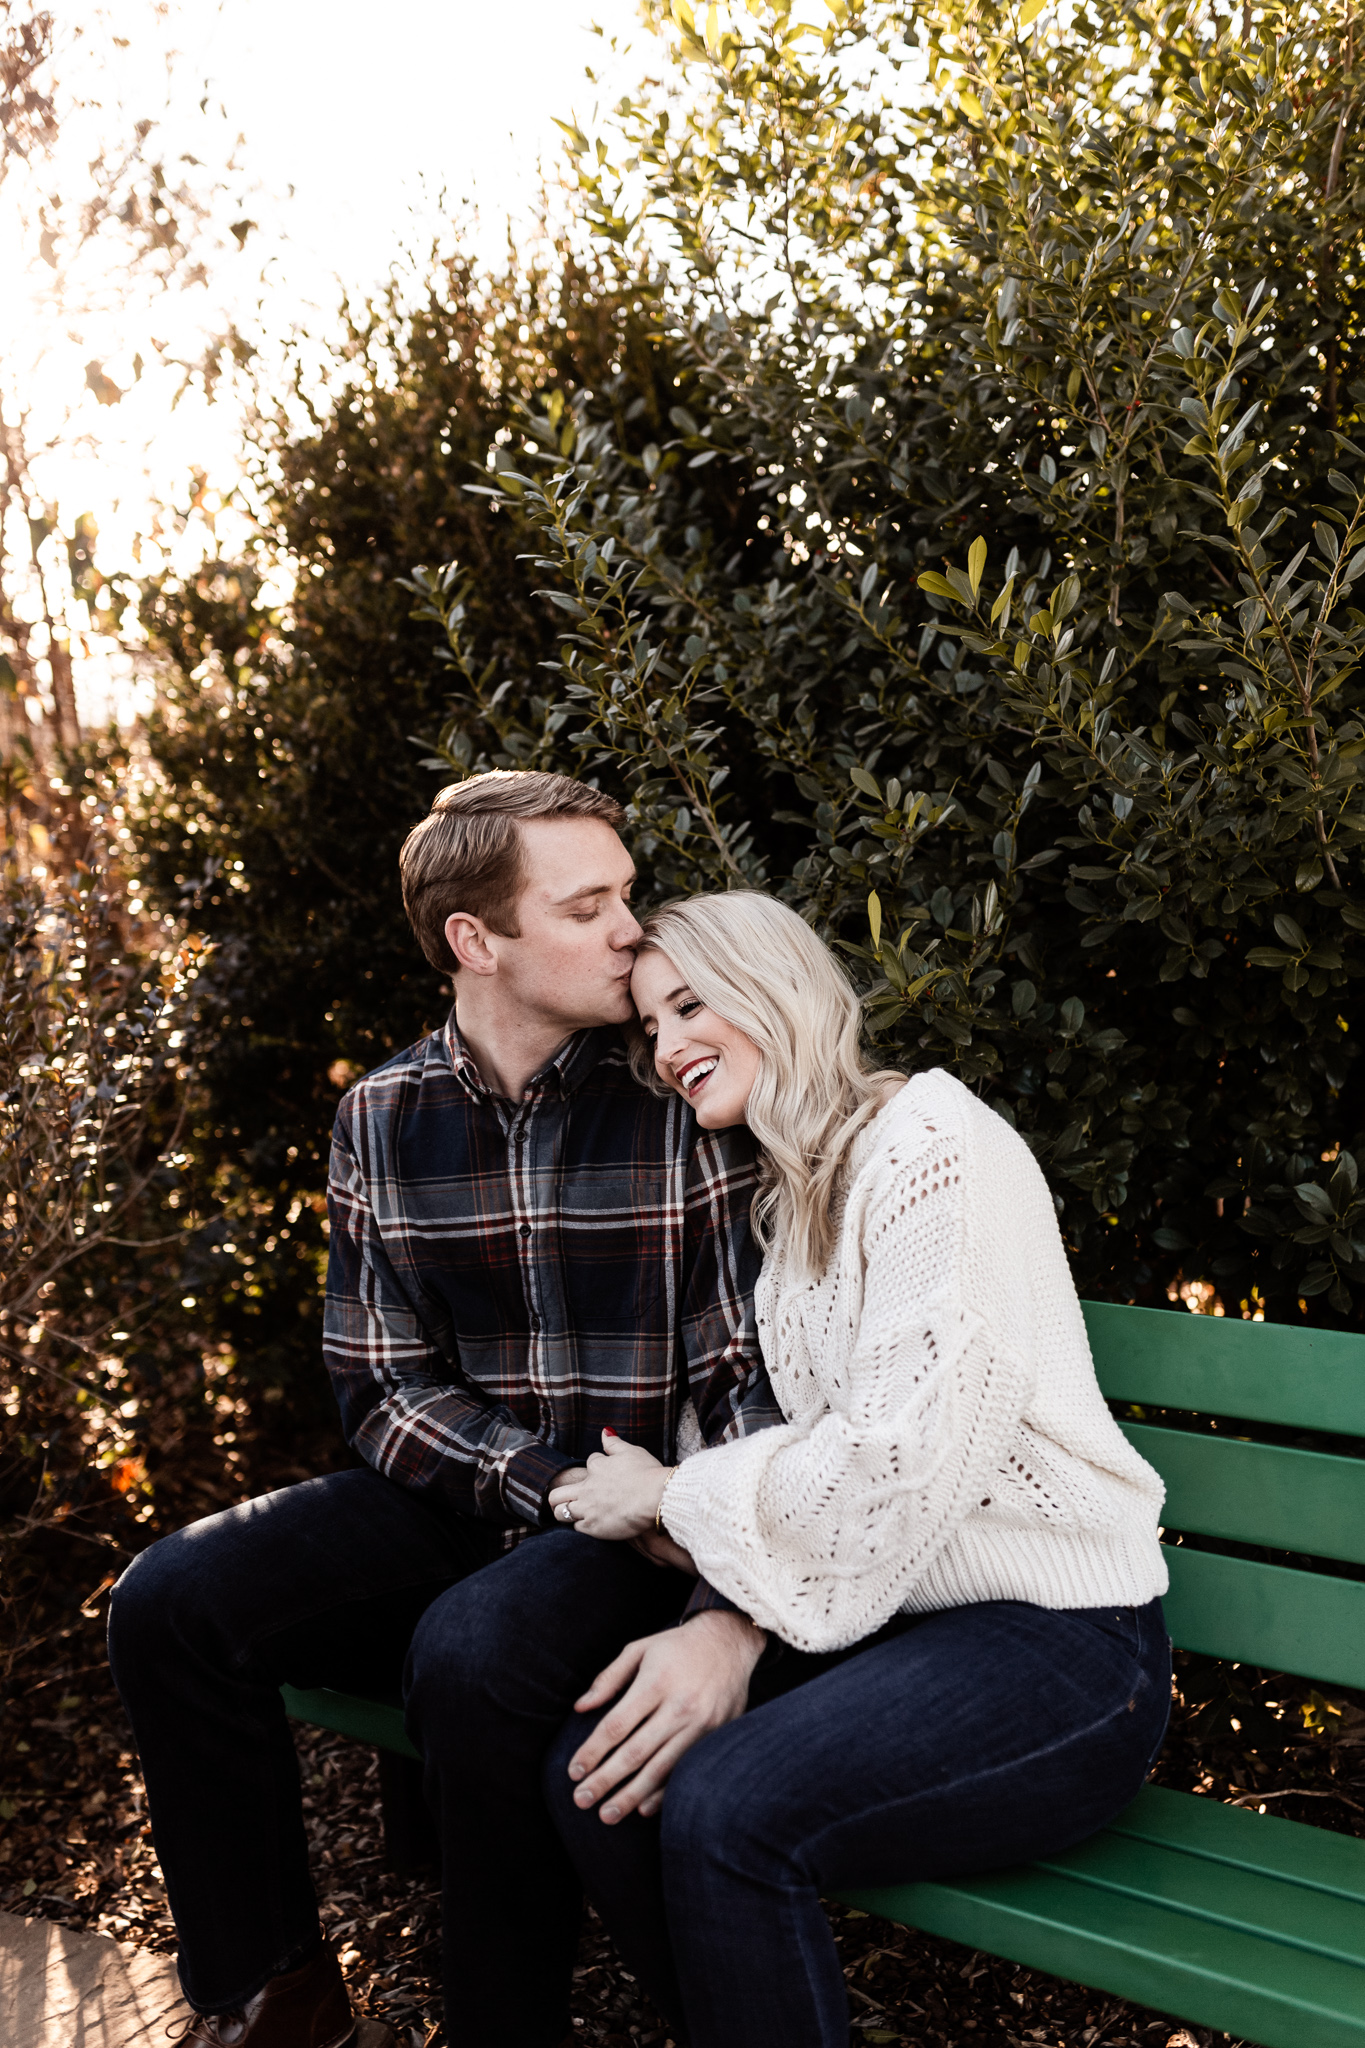 Foster + Alexa | Spring Garden Engagements | Oklahoma Wedding Photographer-14.jpg